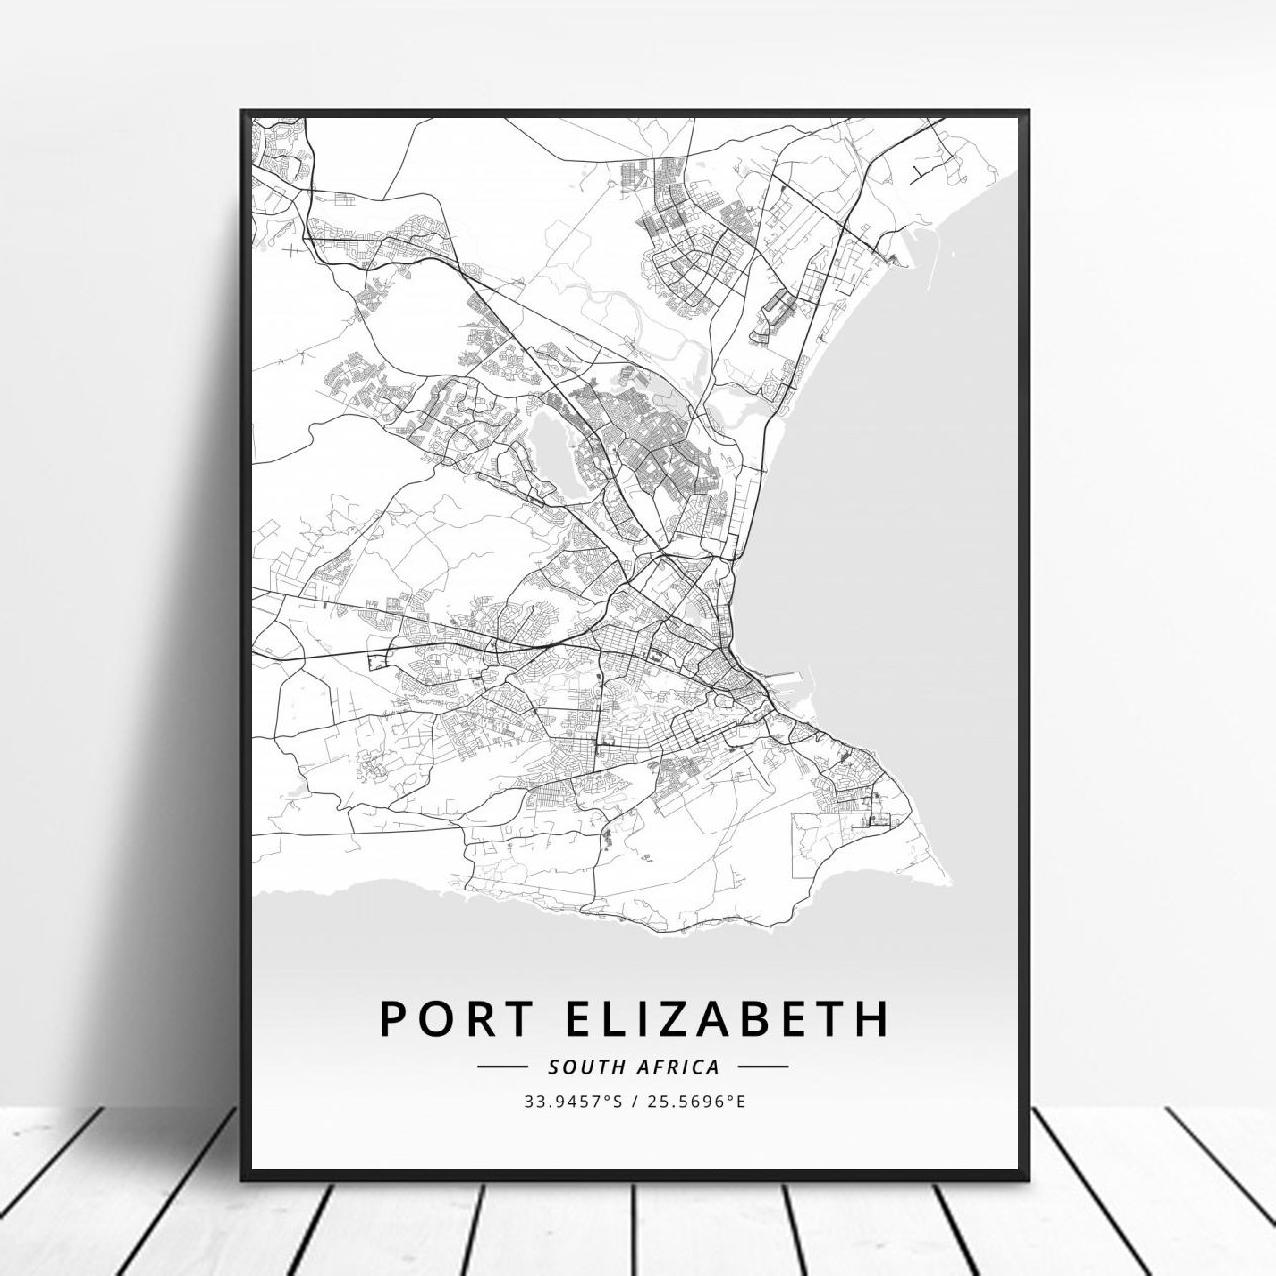 Port Elizabeth Stellenbosch Cape Town Johannesburg Pretoria <font><b>Durban</b></font> South Afric Canvas Art Map Poster image